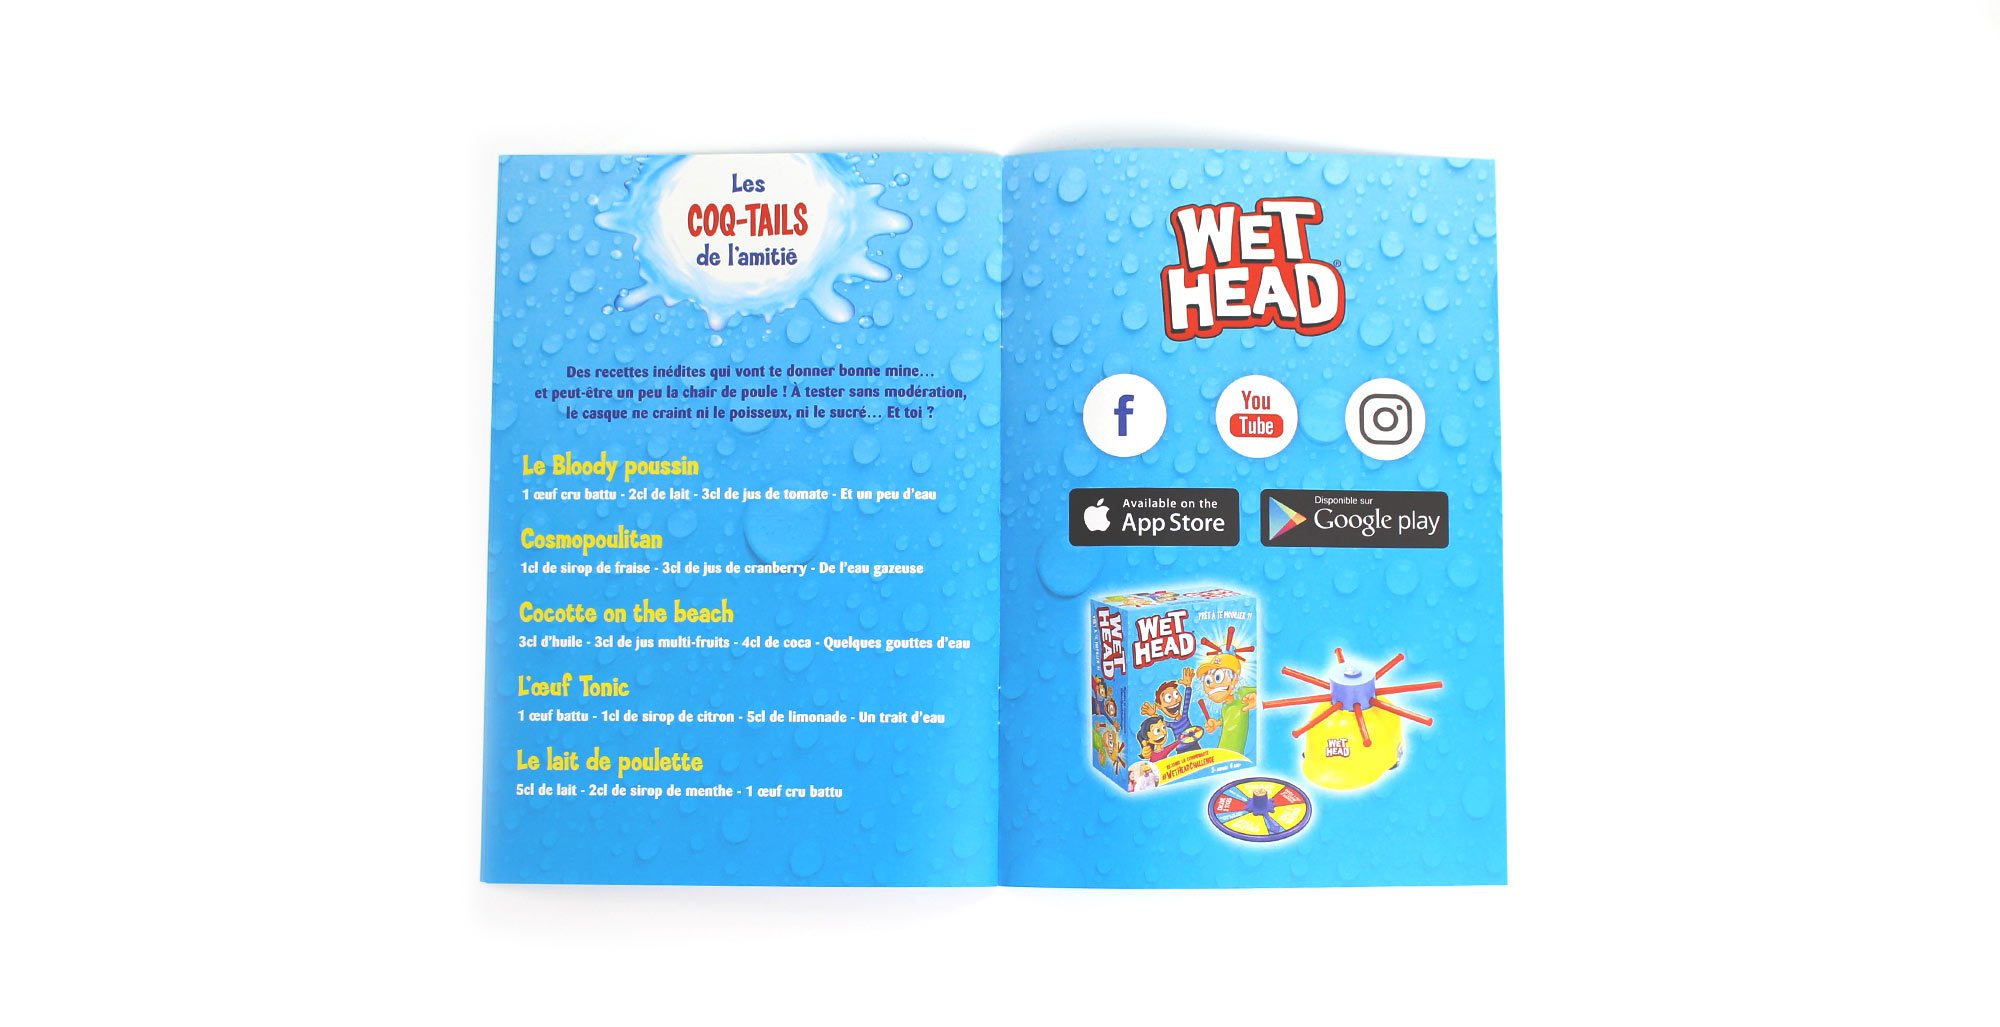 Sharing Agency - Stratégie de communication pour Wet Head Challenge